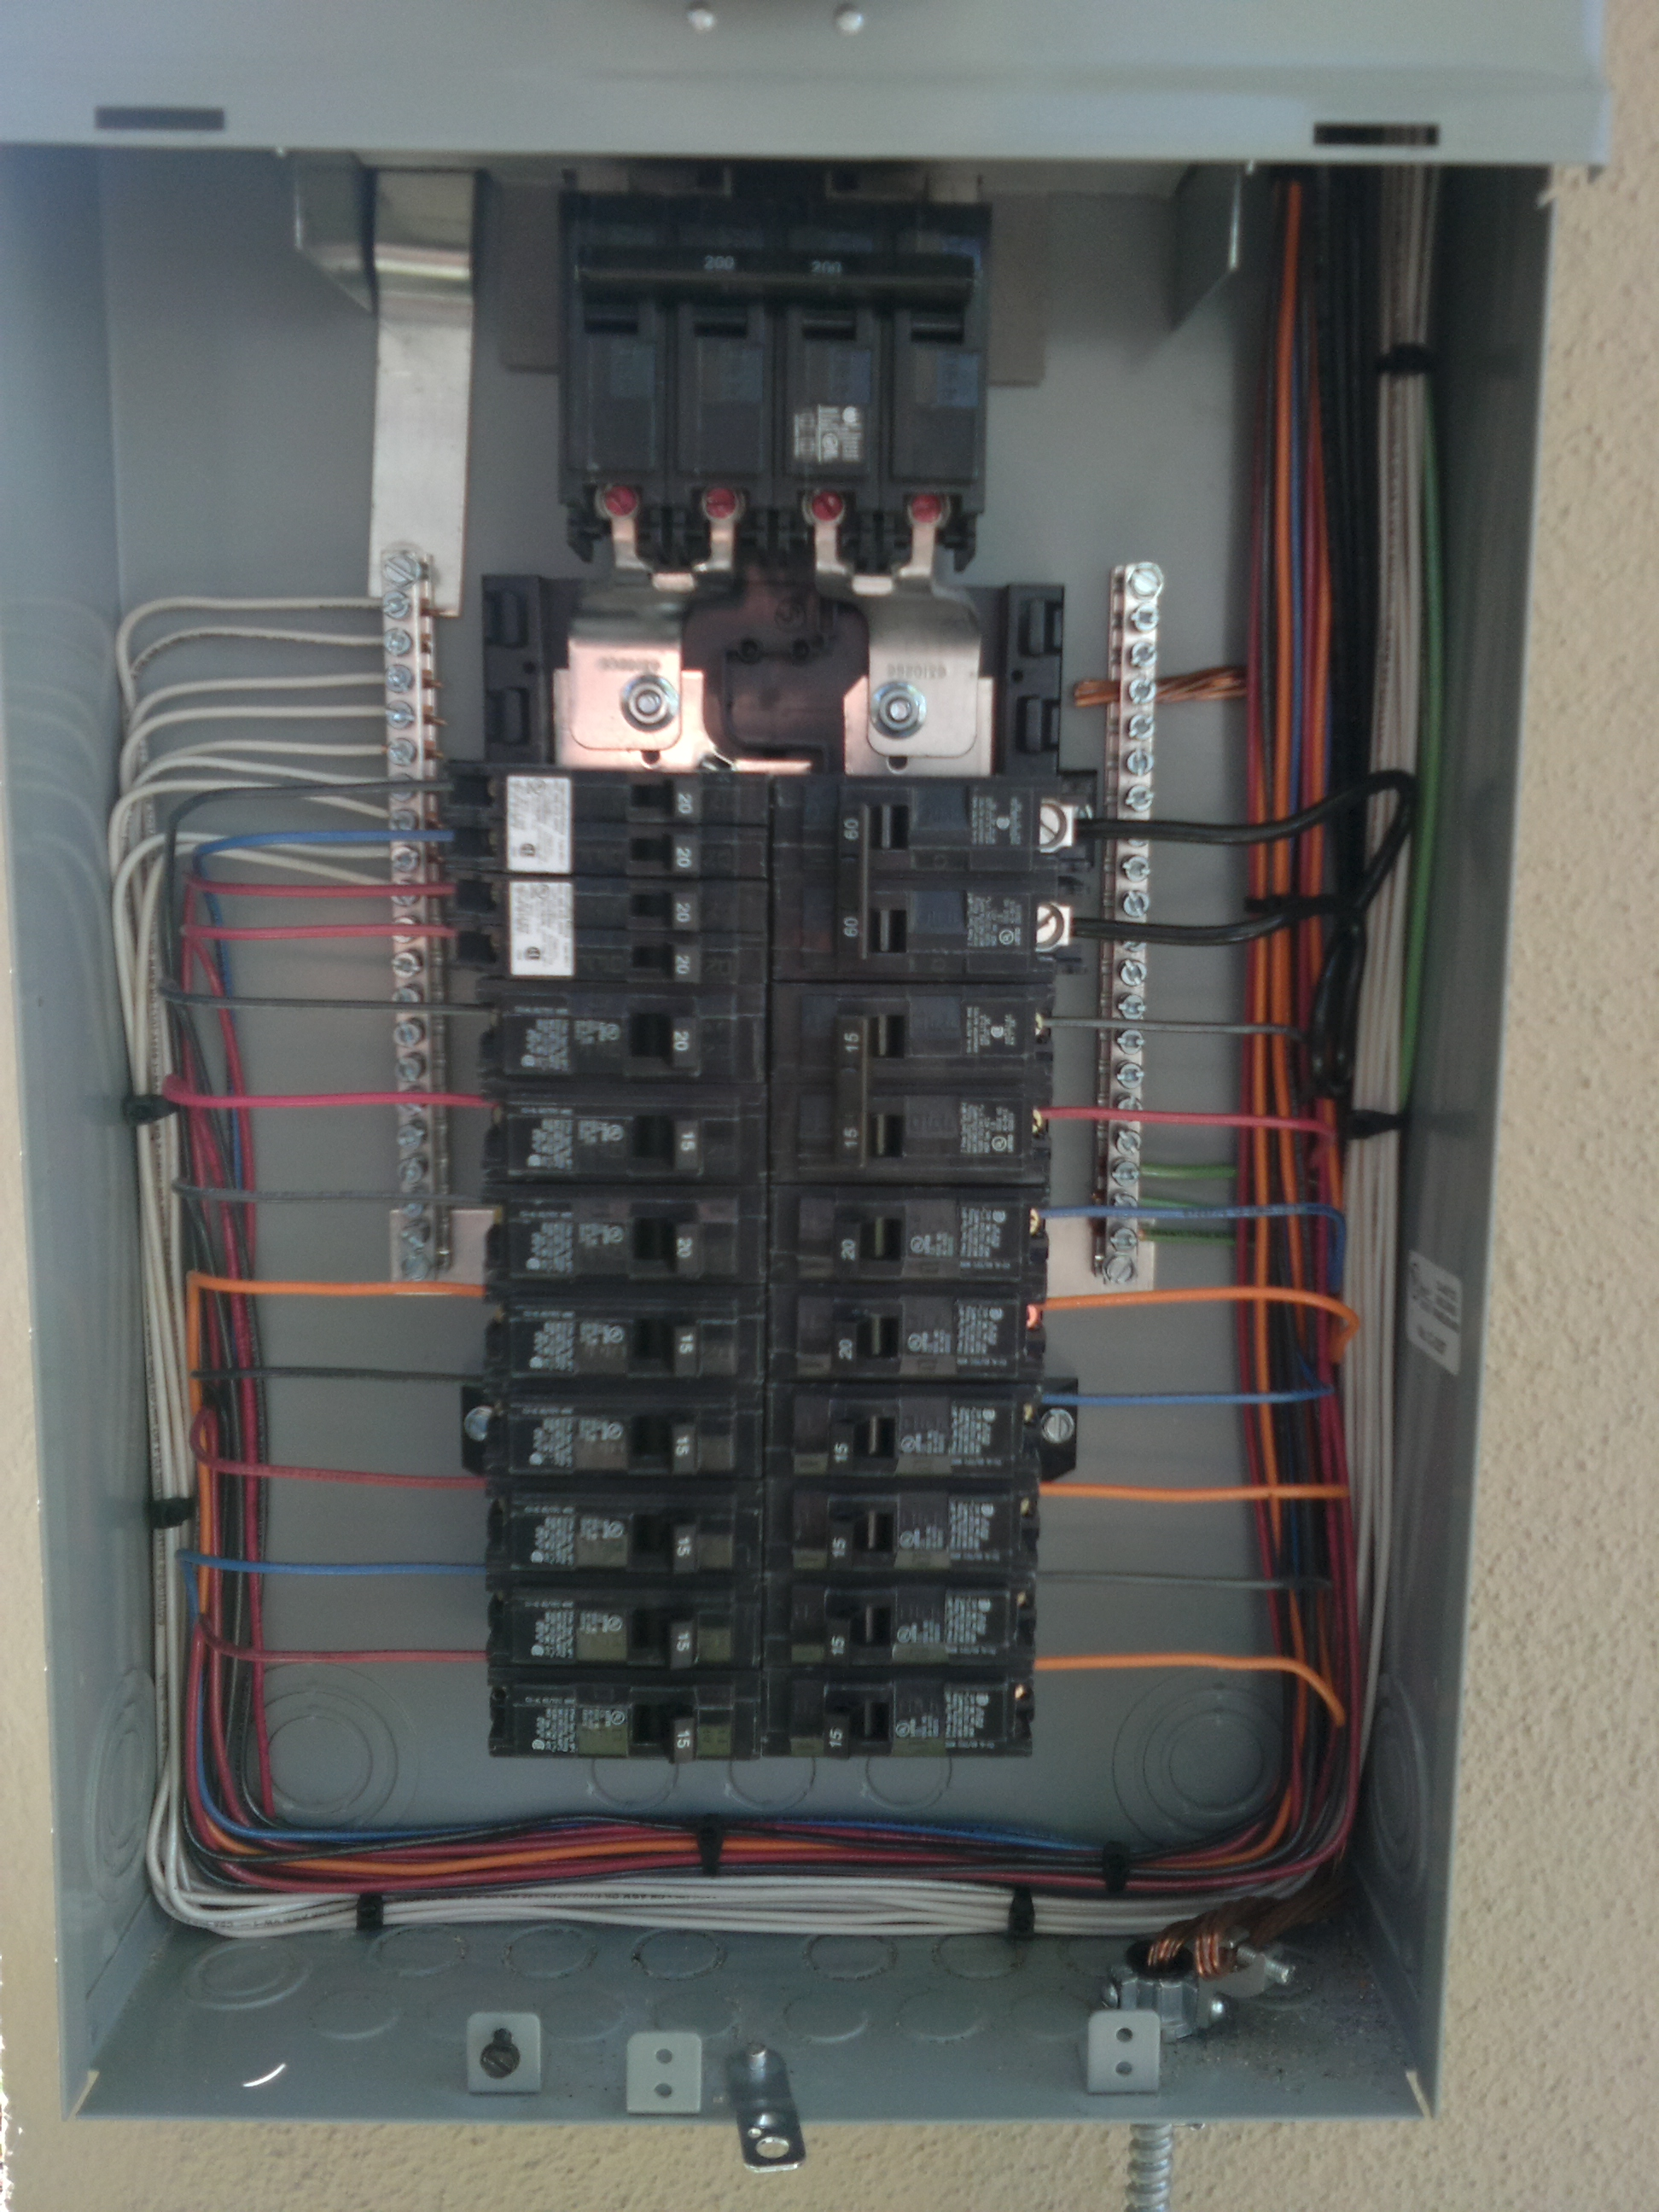 Wire For 100 Sub Panel Diagram Auto Electrical Wiring Rockfield Pickups Diagrams A Diy Problem We Often Find In Circuit